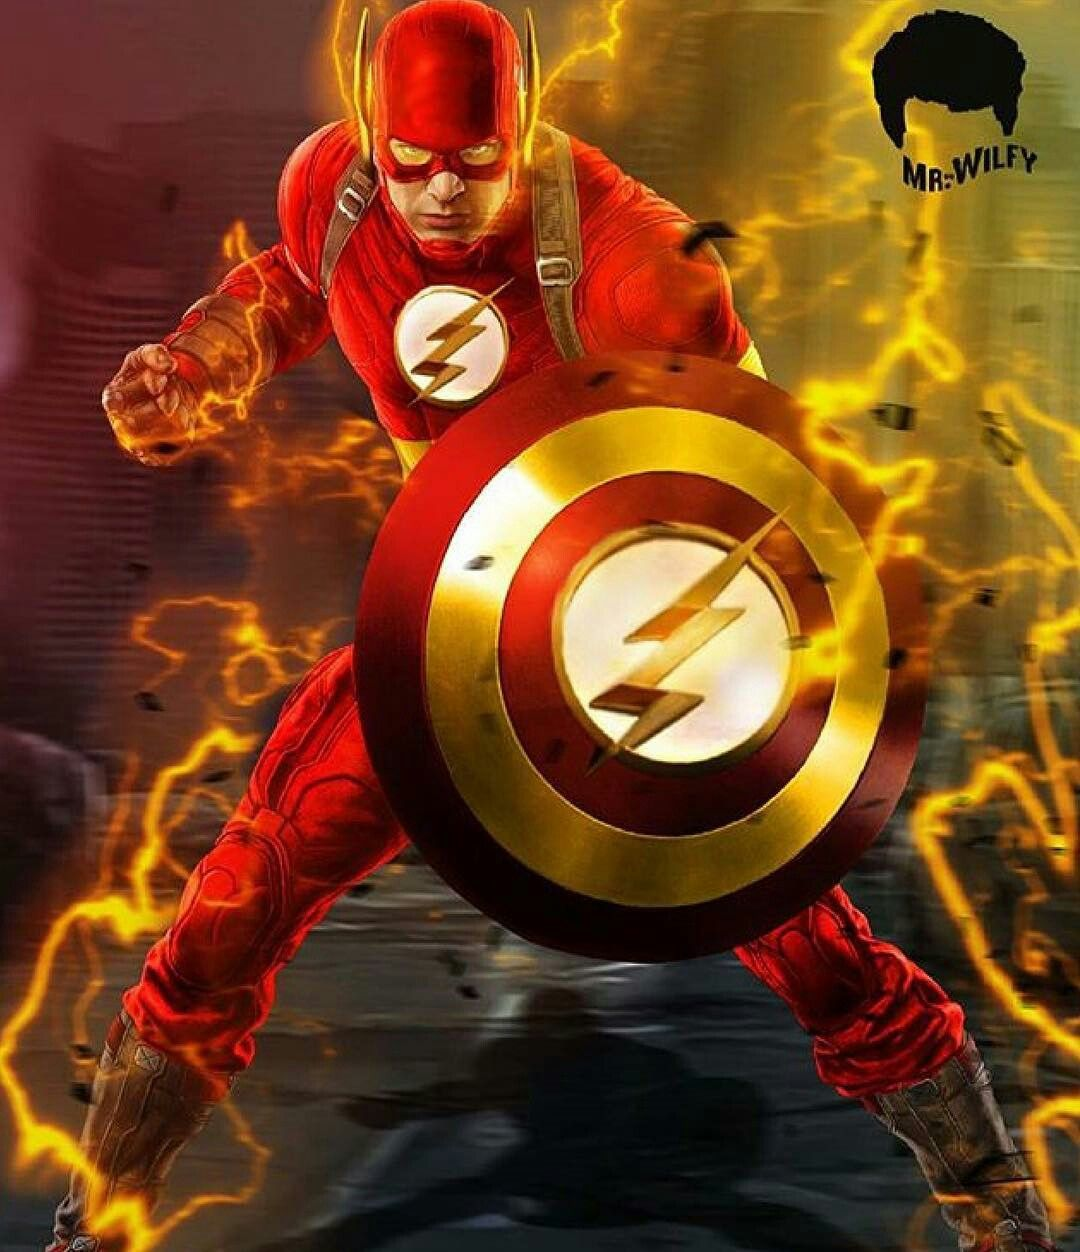 Captain flash a mashup of captain america and the flash - Super hero flash ...